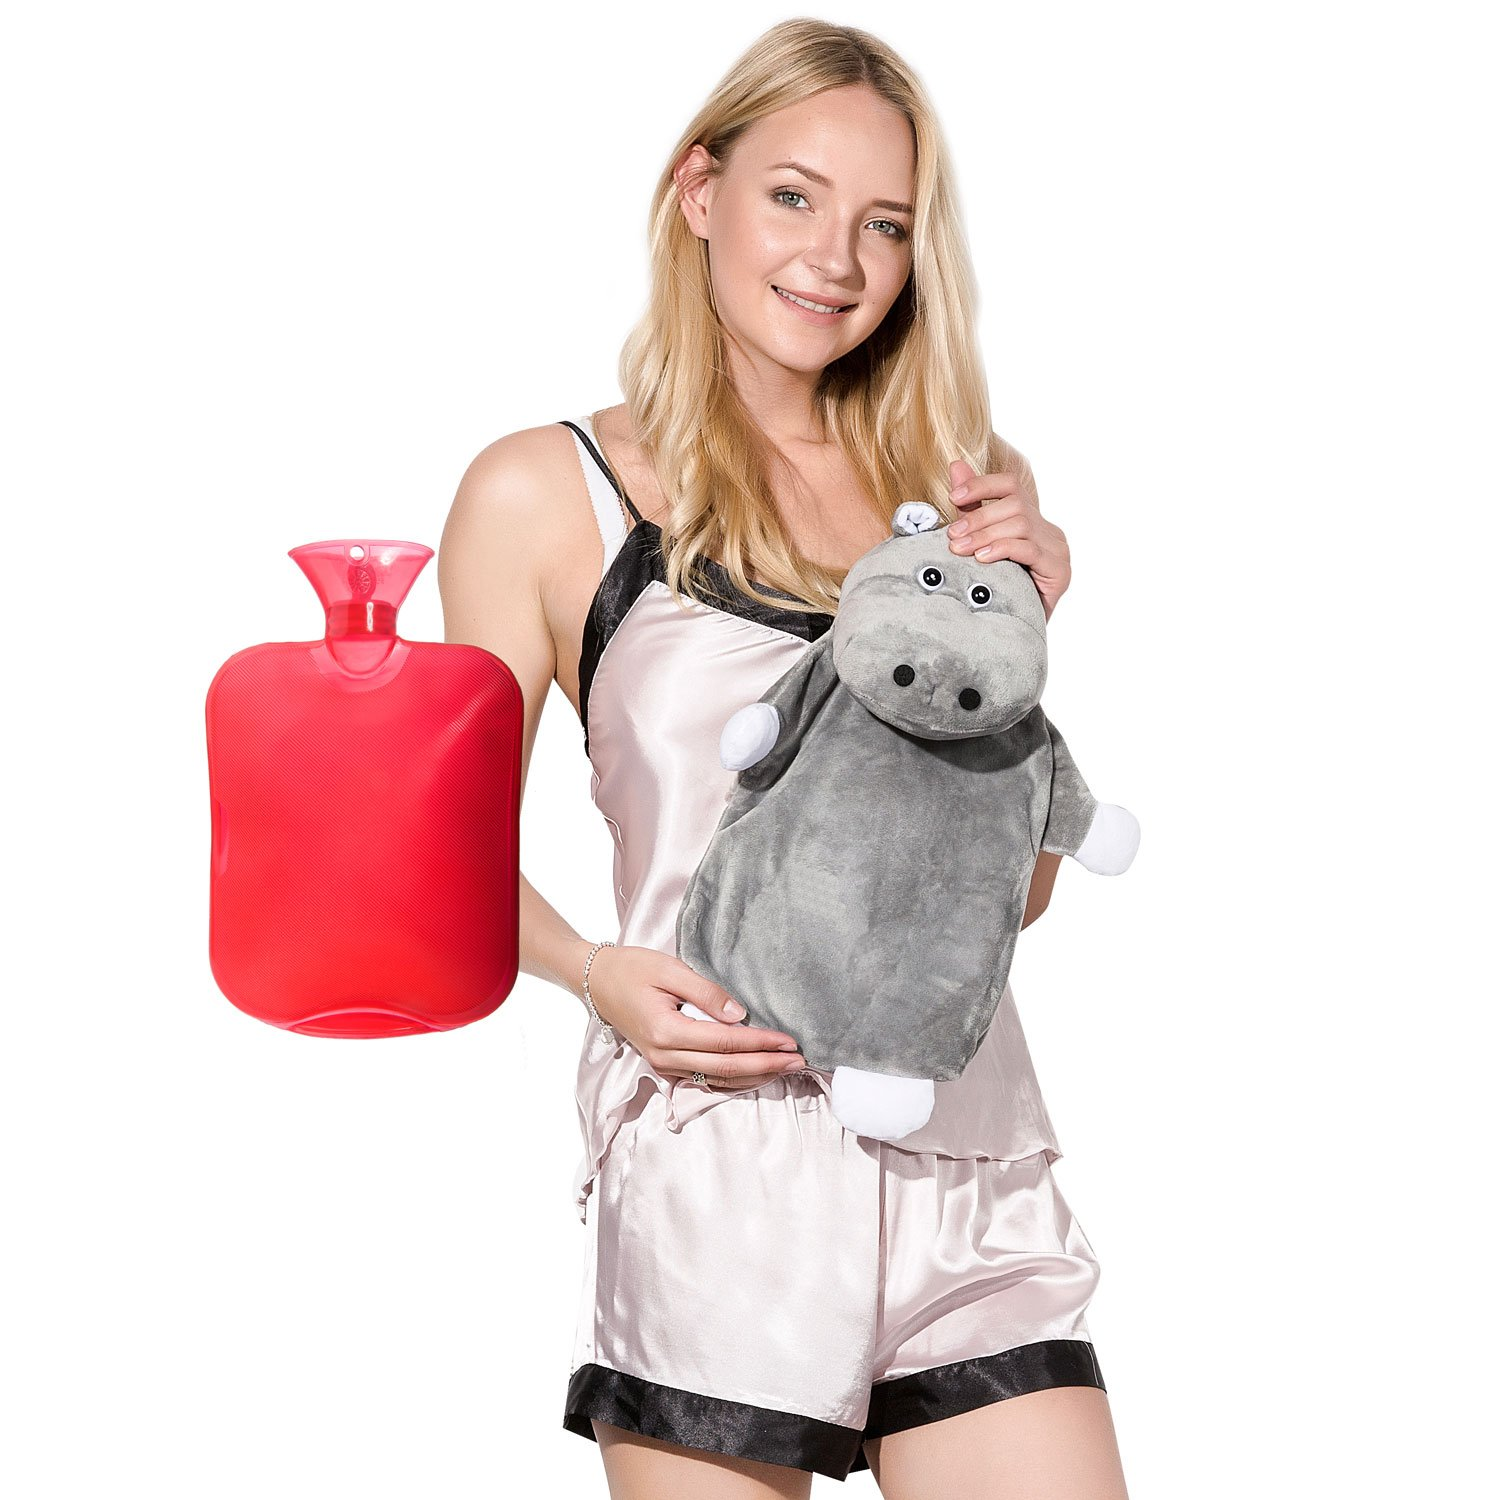 Peterpan Transparent Classic Rubber Hot Water Bottle with Animal Cover,2 Liter Hot Water Bag/Ice Bag,Red